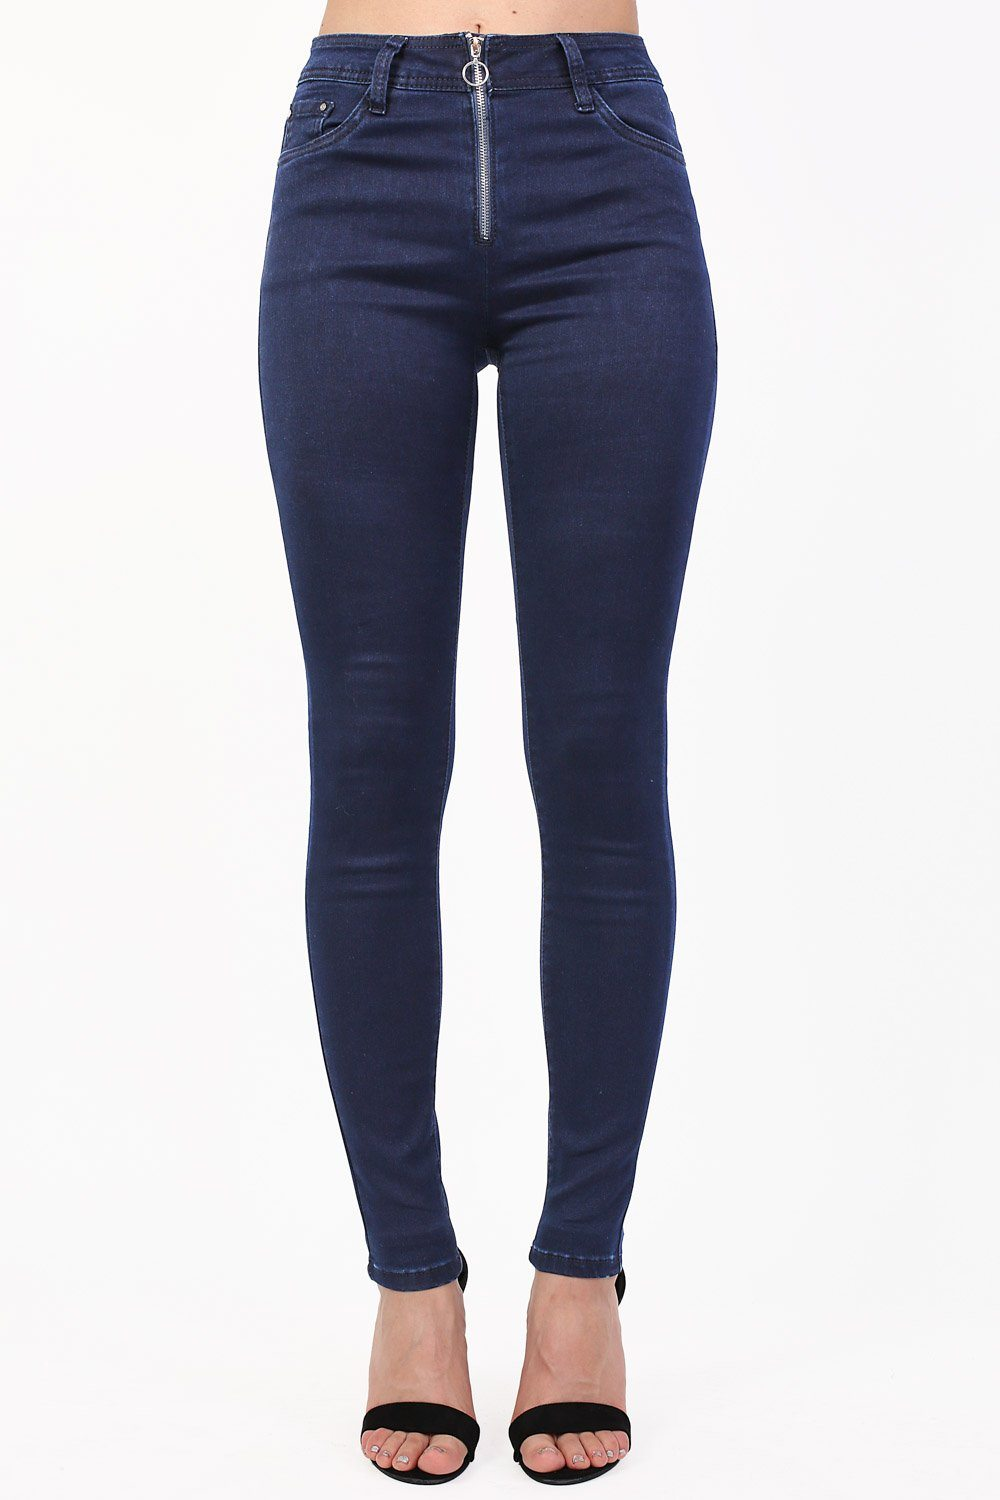 Plain Exposed Zip Skinny Jeans in Dark Denim 1